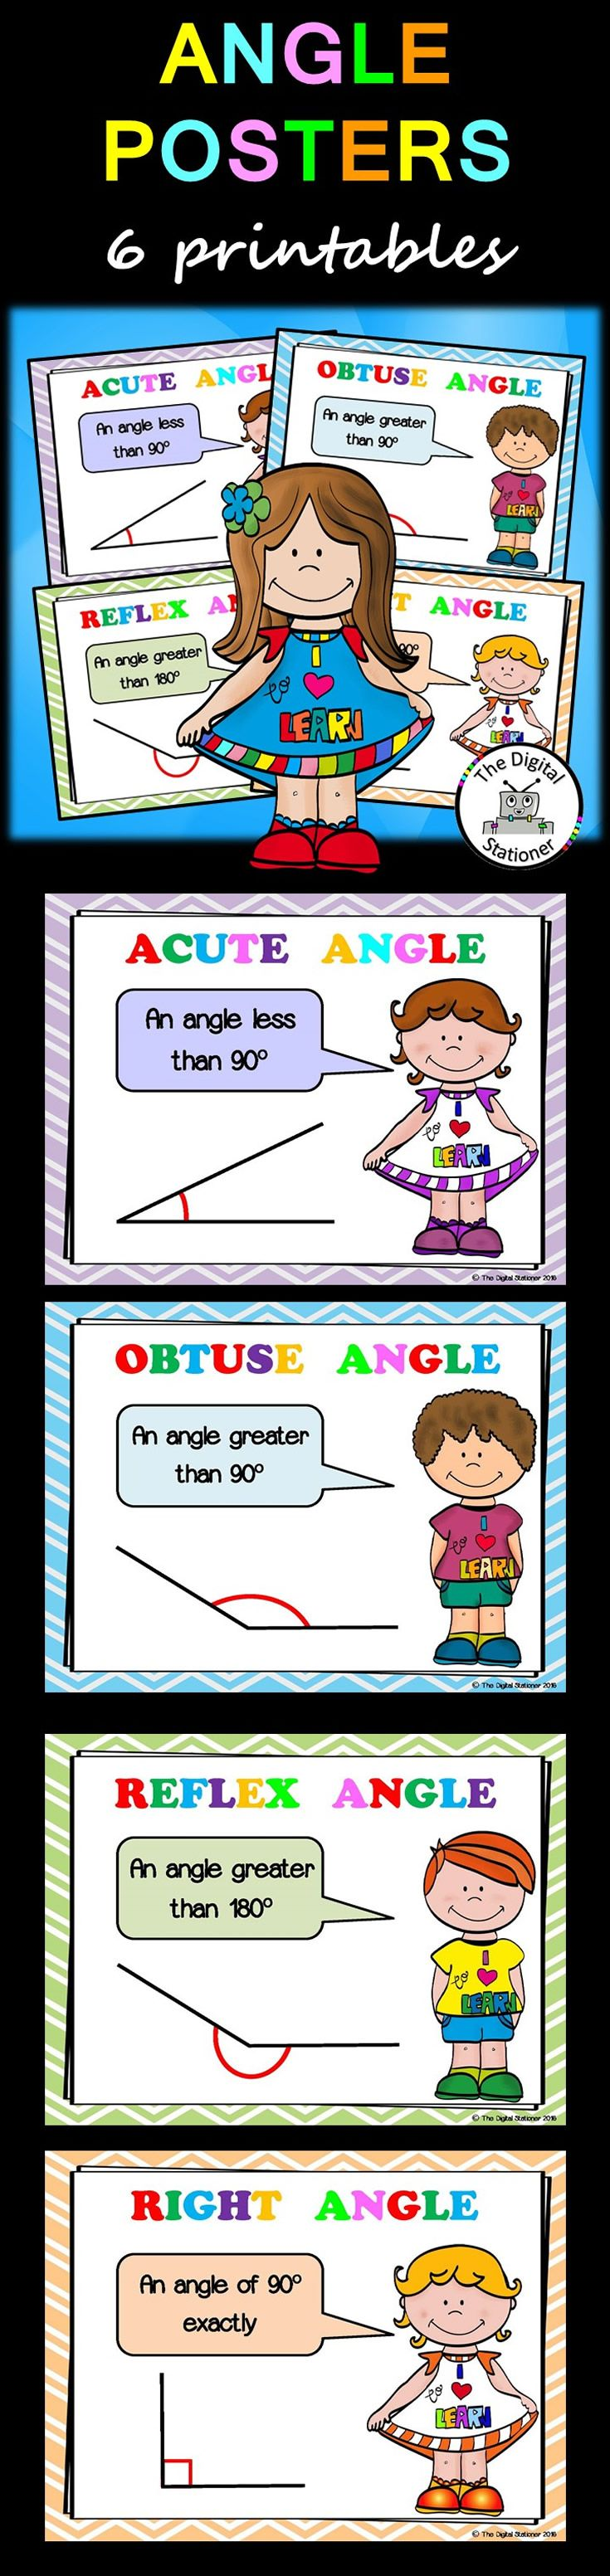 $1 - Angles - 6 posters - Maths. Numeracy, displays, revision, guidance, printables, no prep